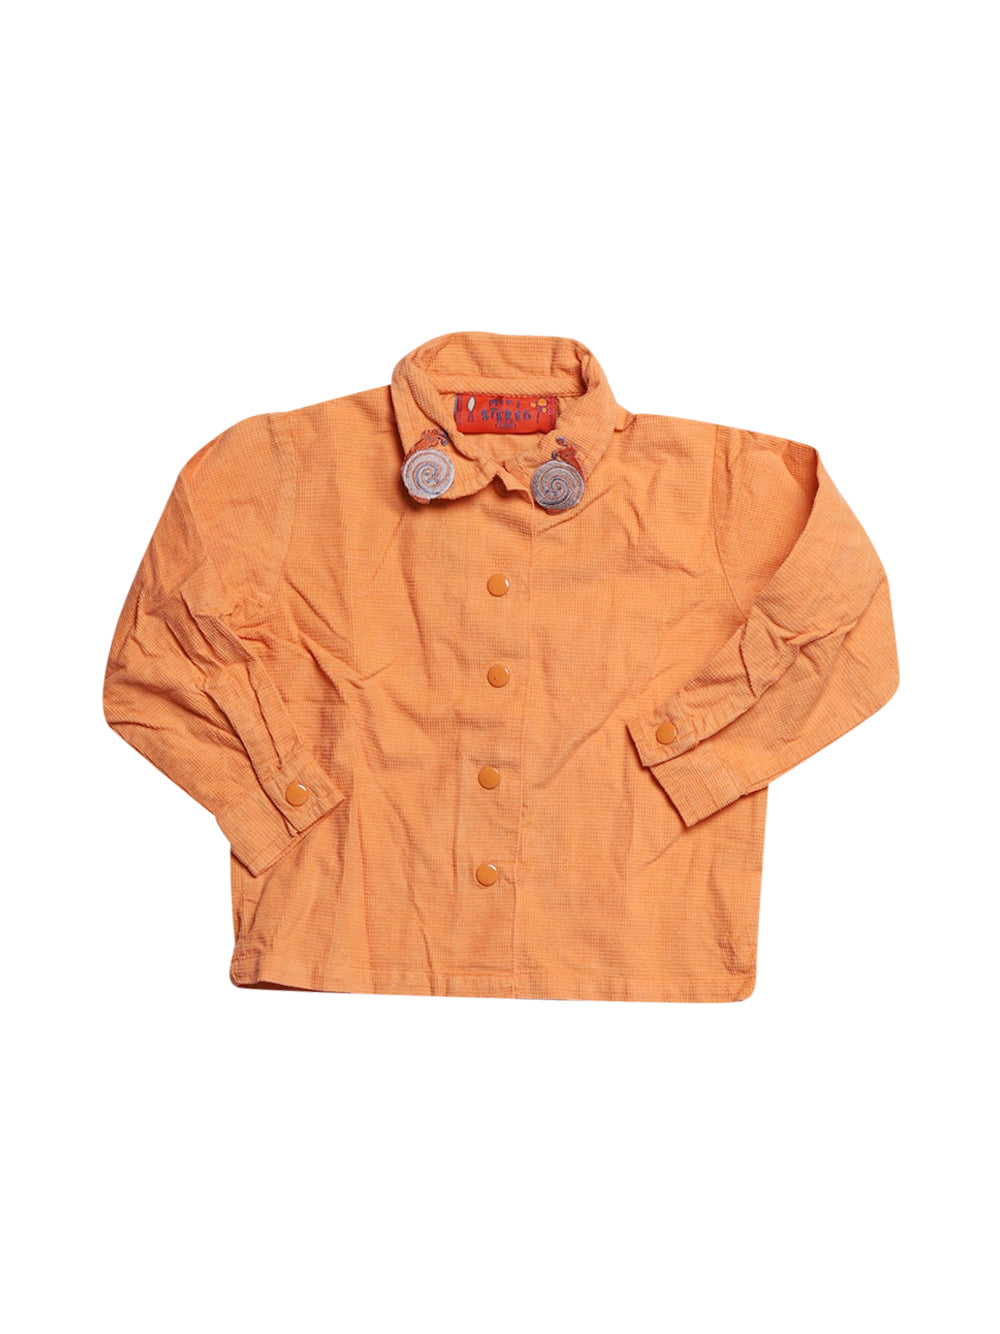 Front photo of Preloved mini stereo Orange Girl's shirt - size 2-3 yrs